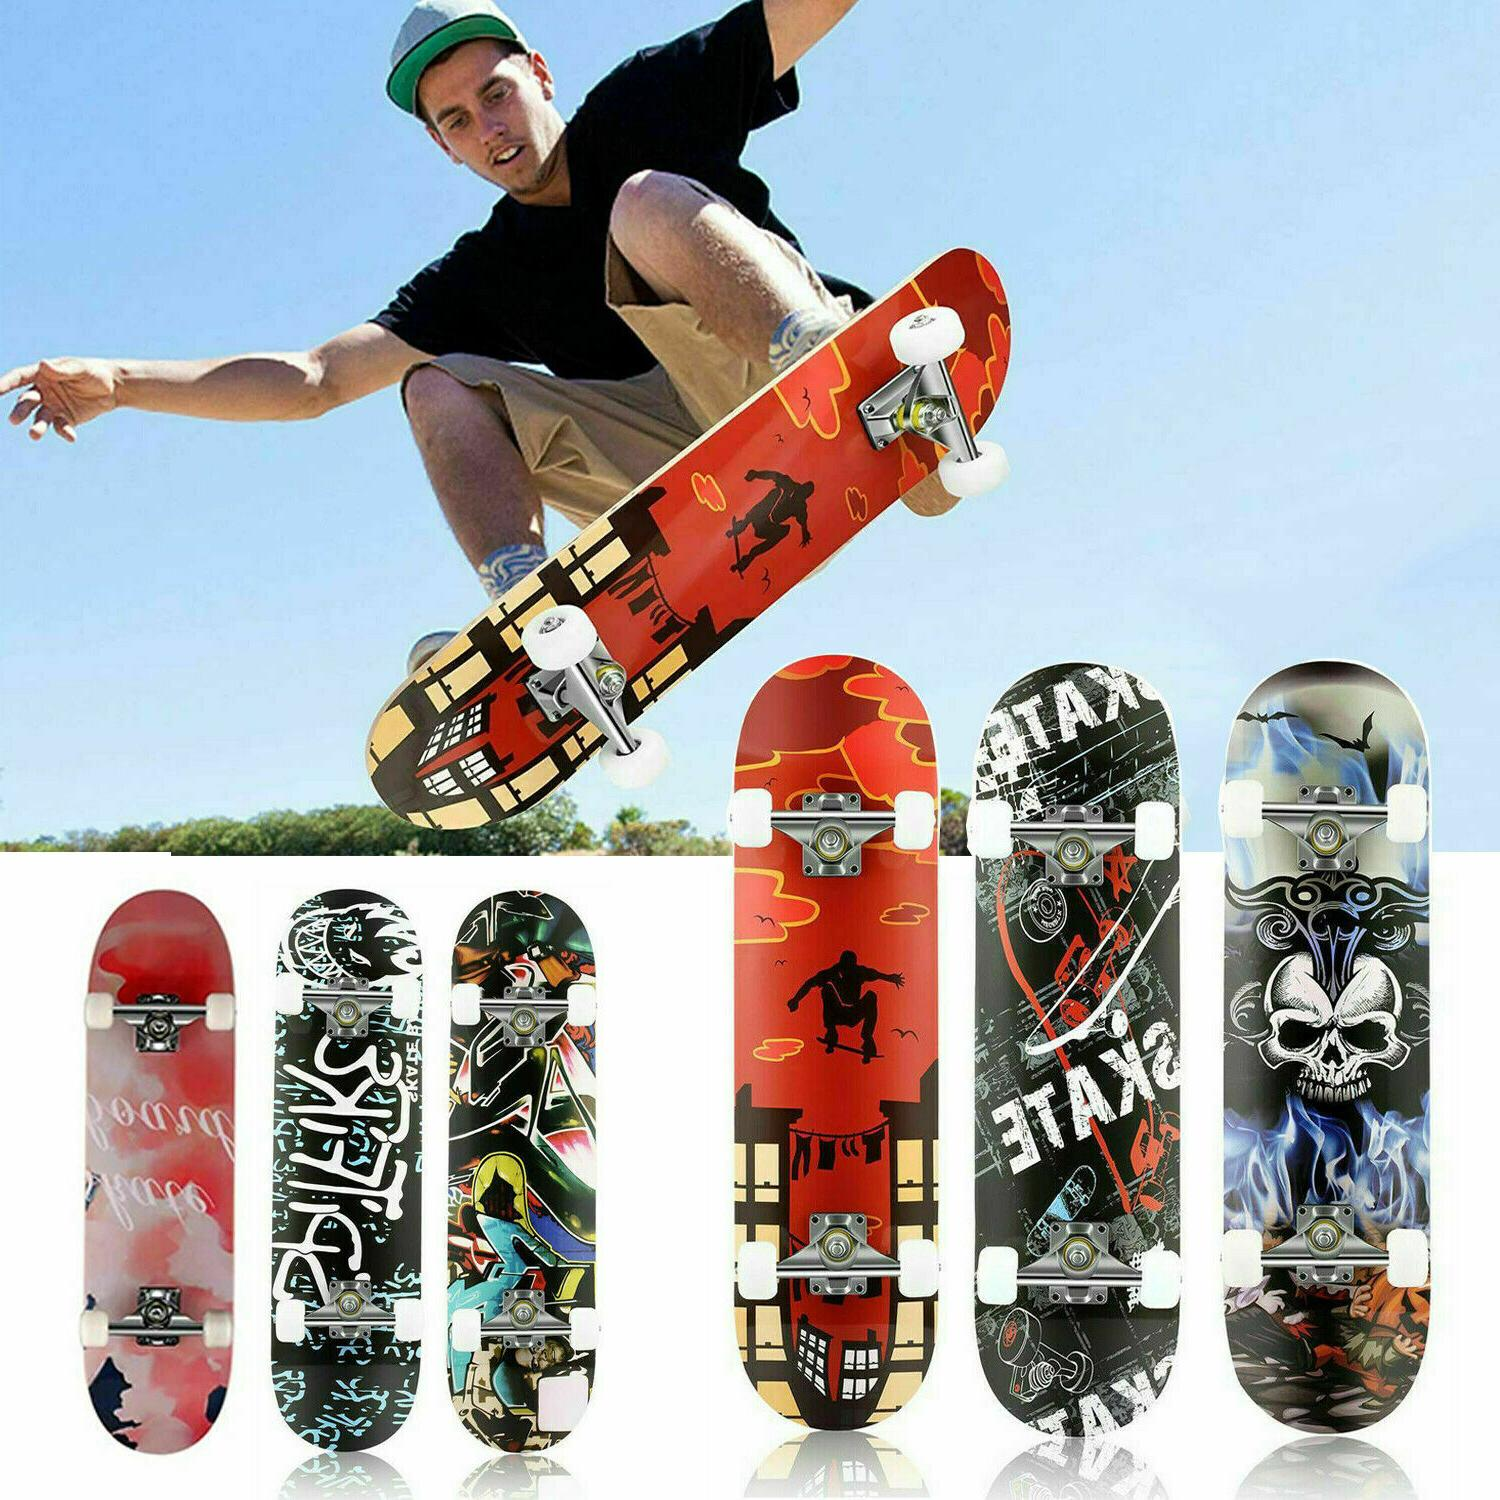 31 x Inch Skateboard Fun Printed Complete Skateboards Layer Long g